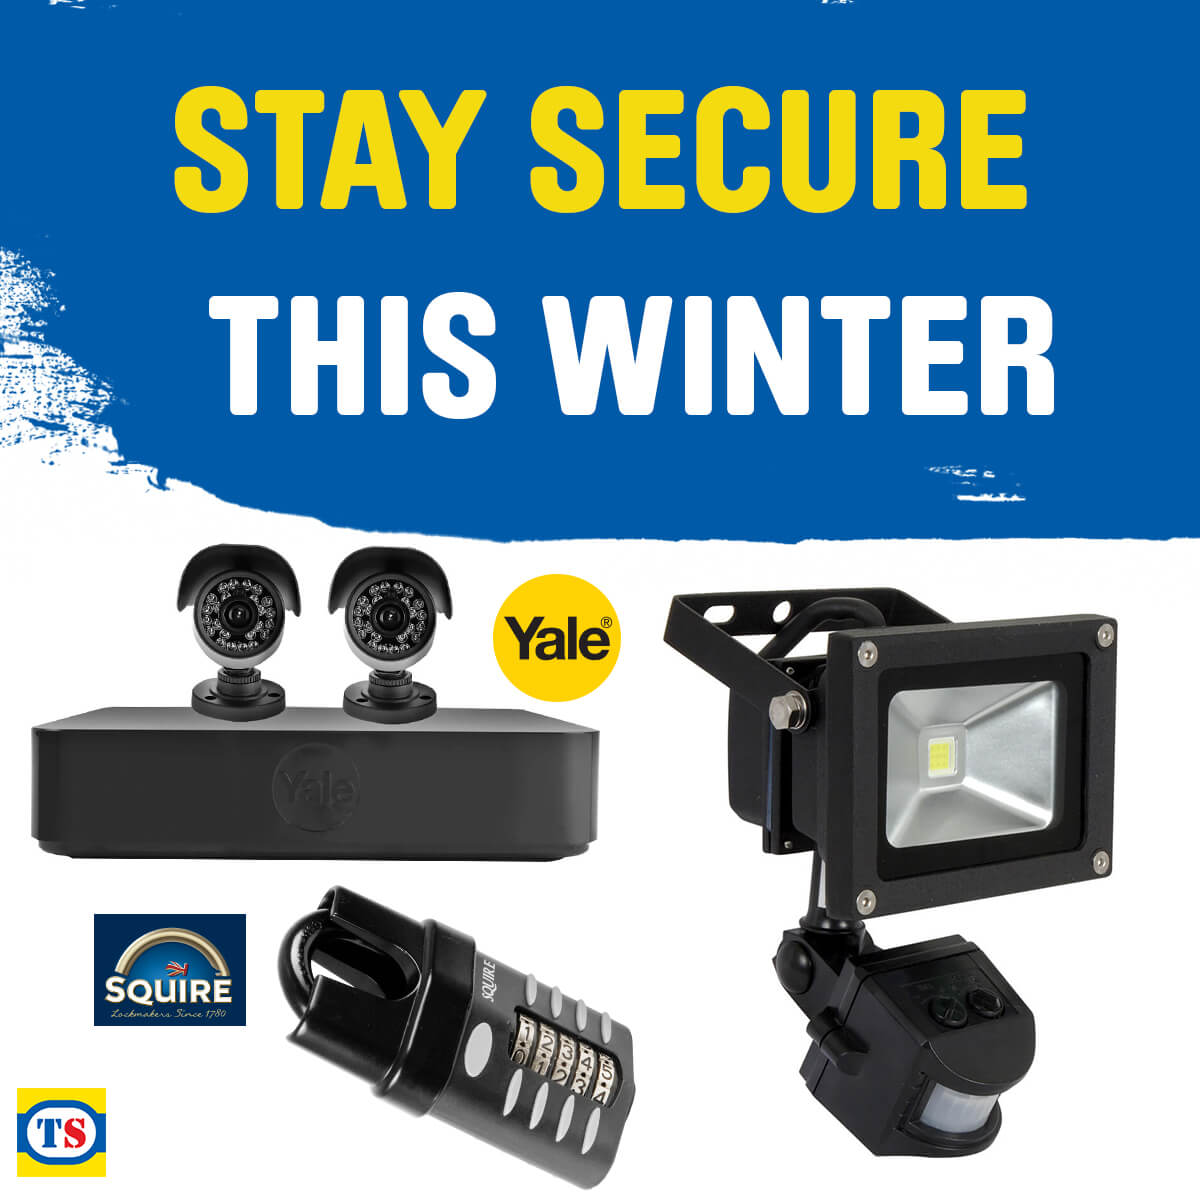 Stay Secure this Winter